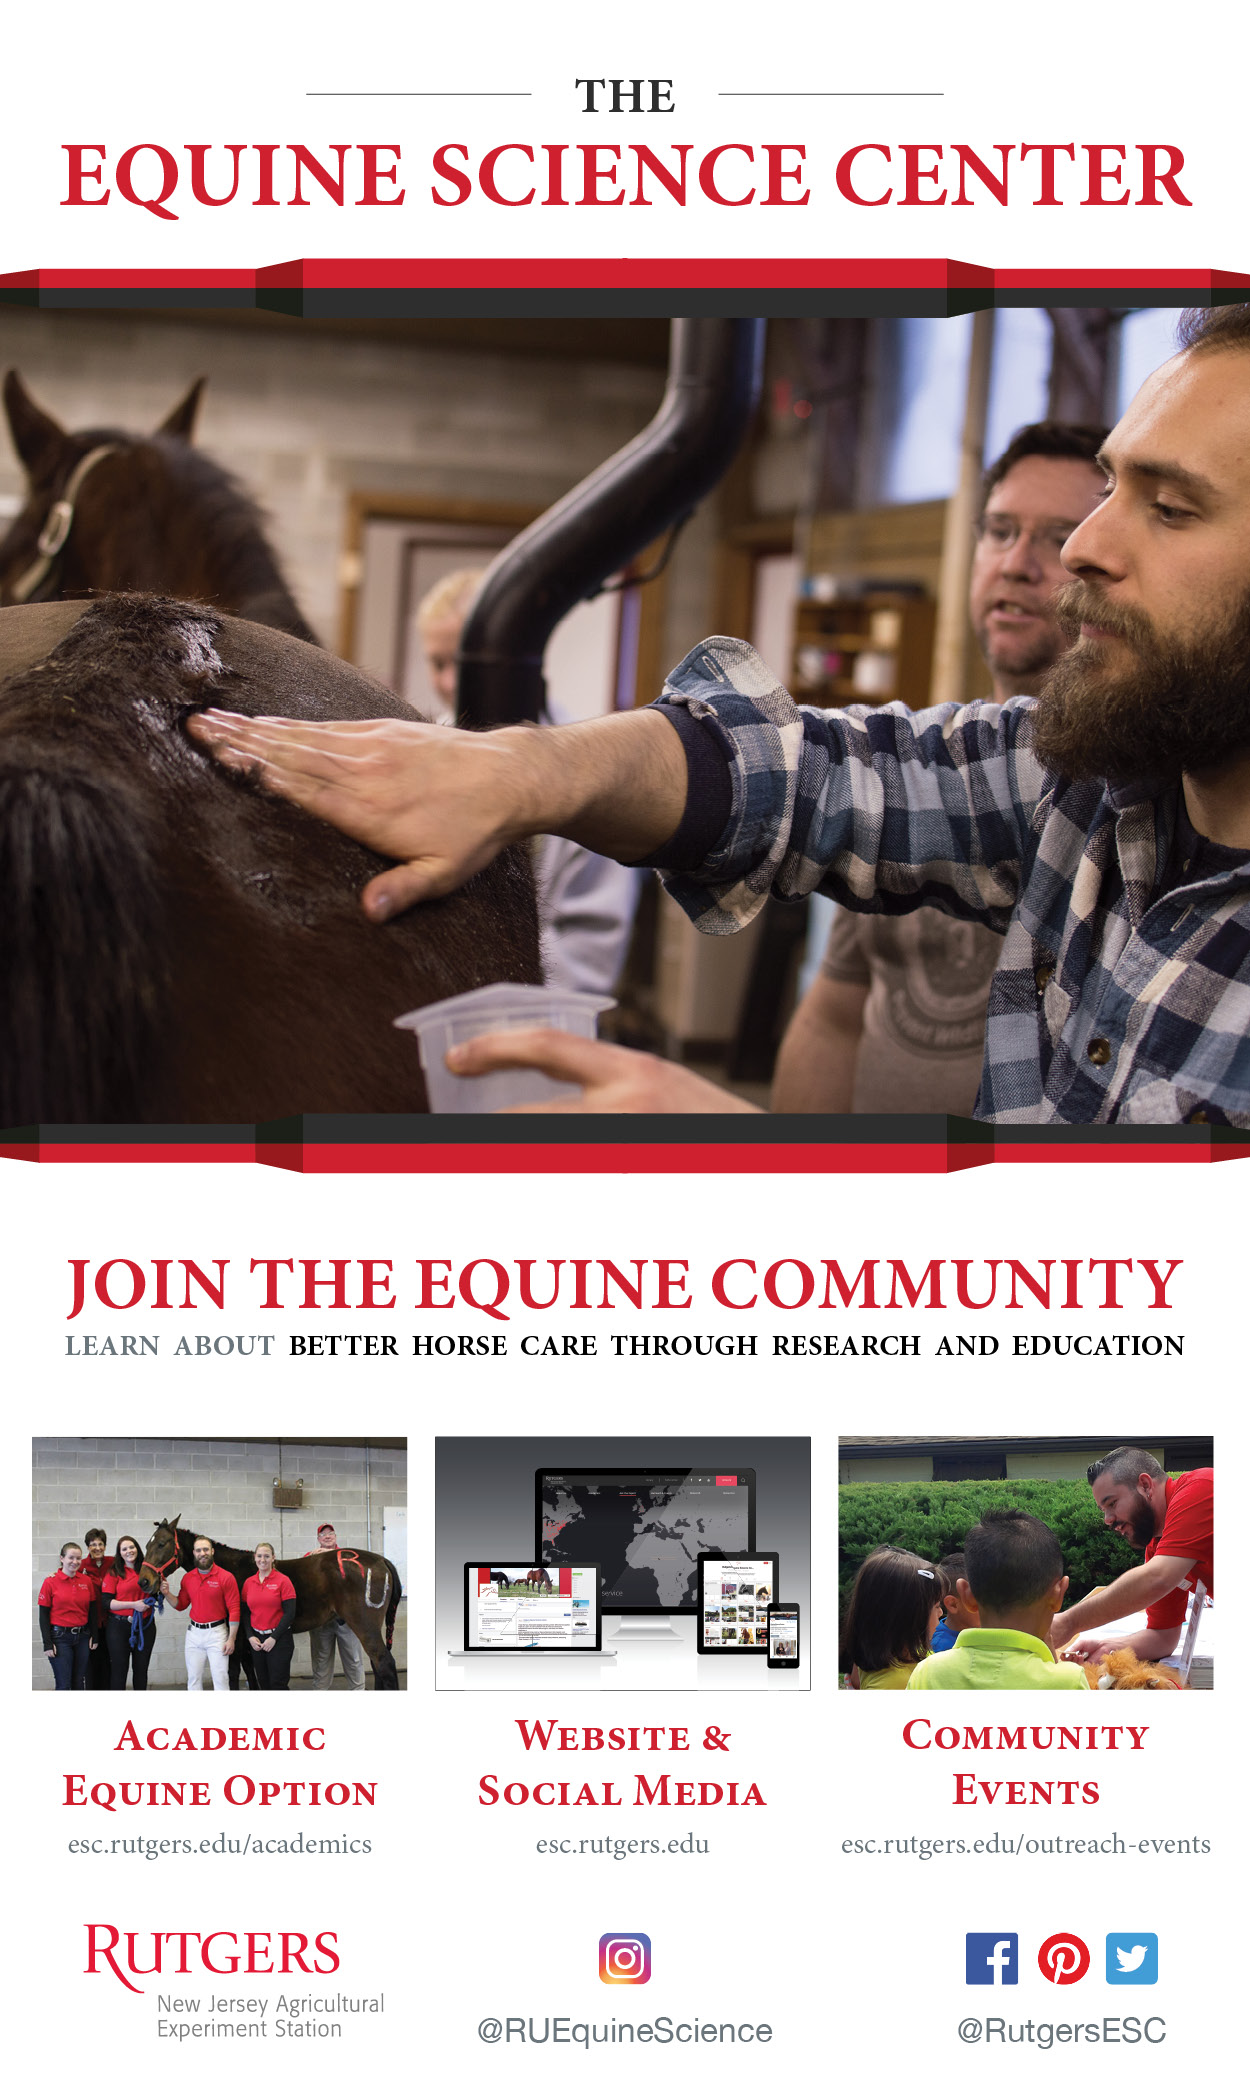 The Equine Science Center-Rutgers